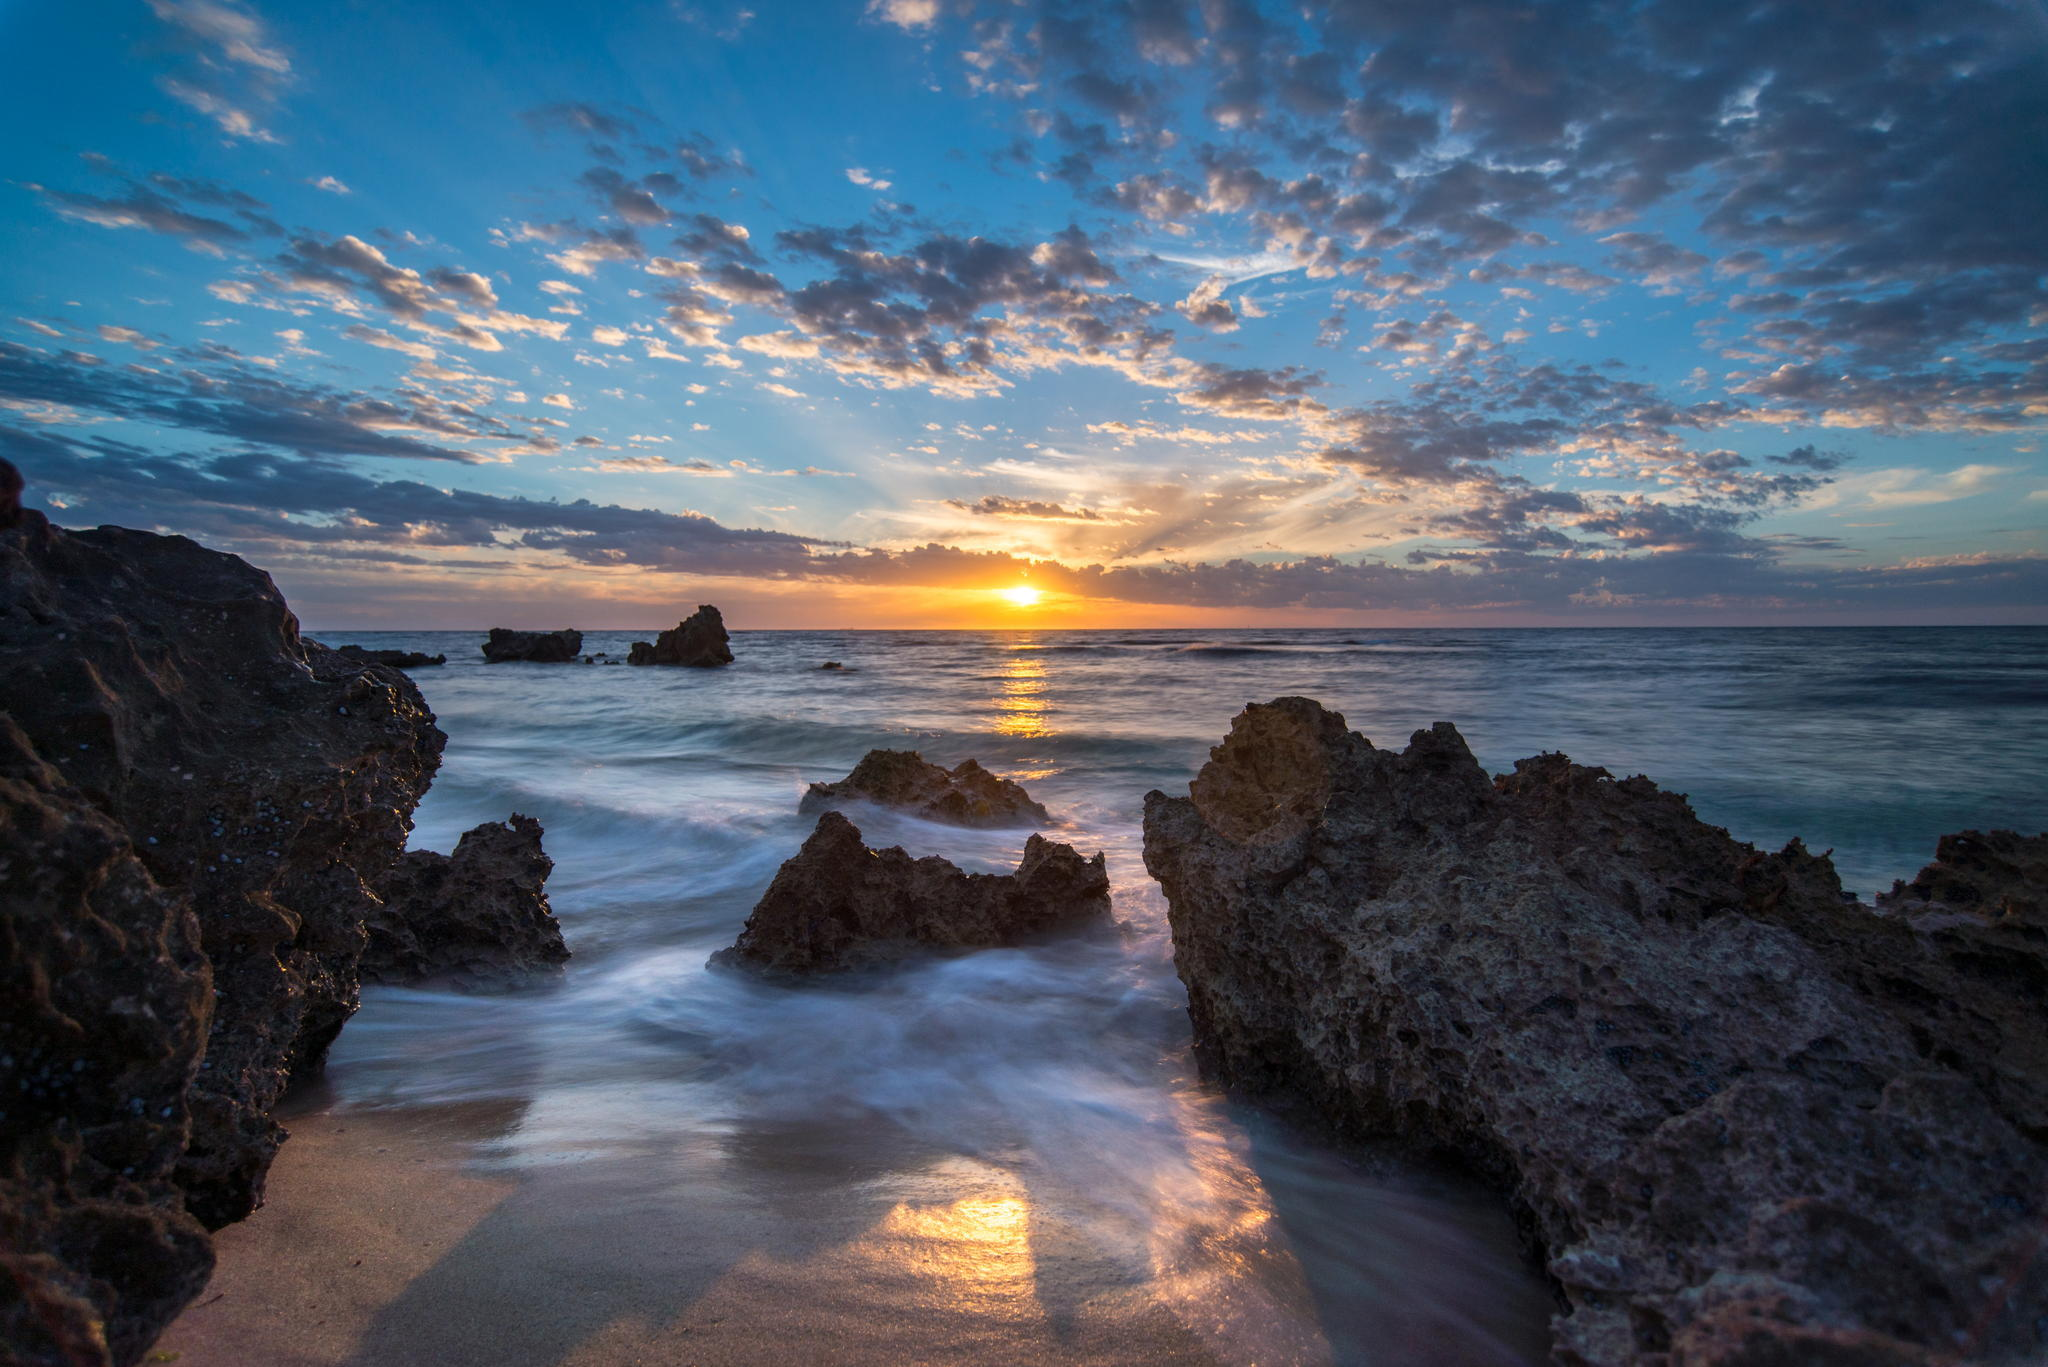 57691 download wallpaper Nature, Sea, Sunset, Stones, Shore, Bank screensavers and pictures for free